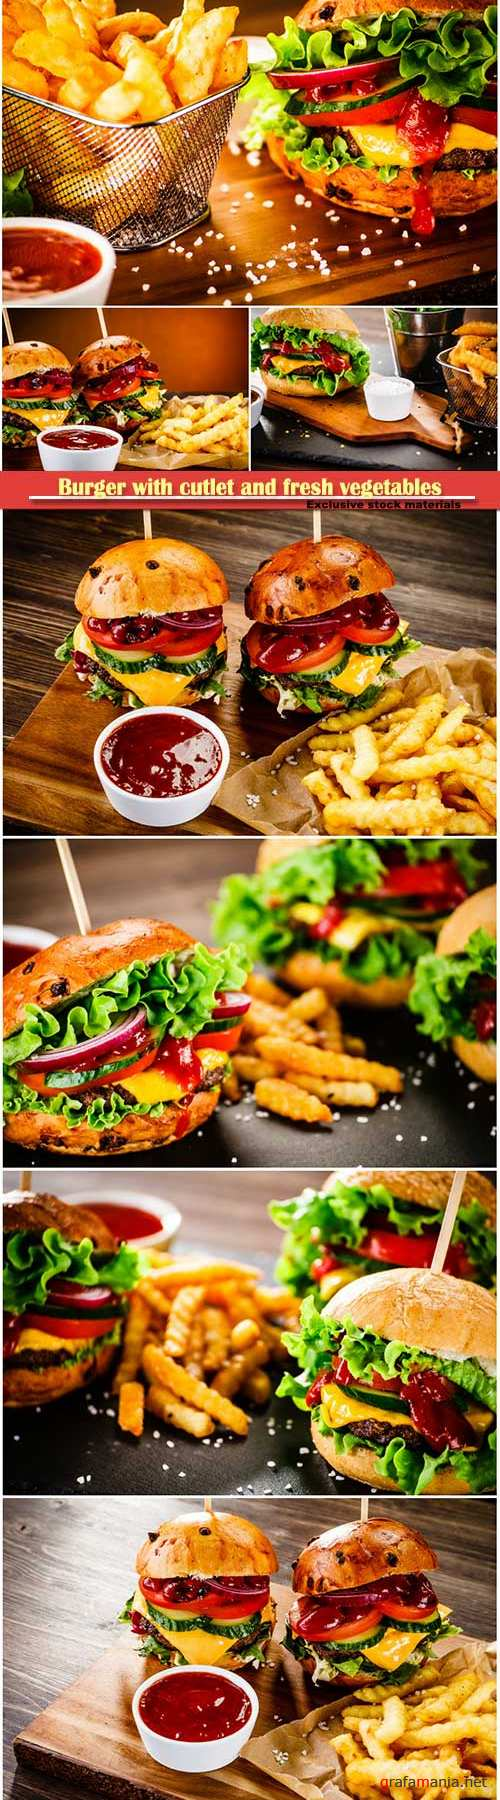 Burger with cutlet fresh vegetables and sauce